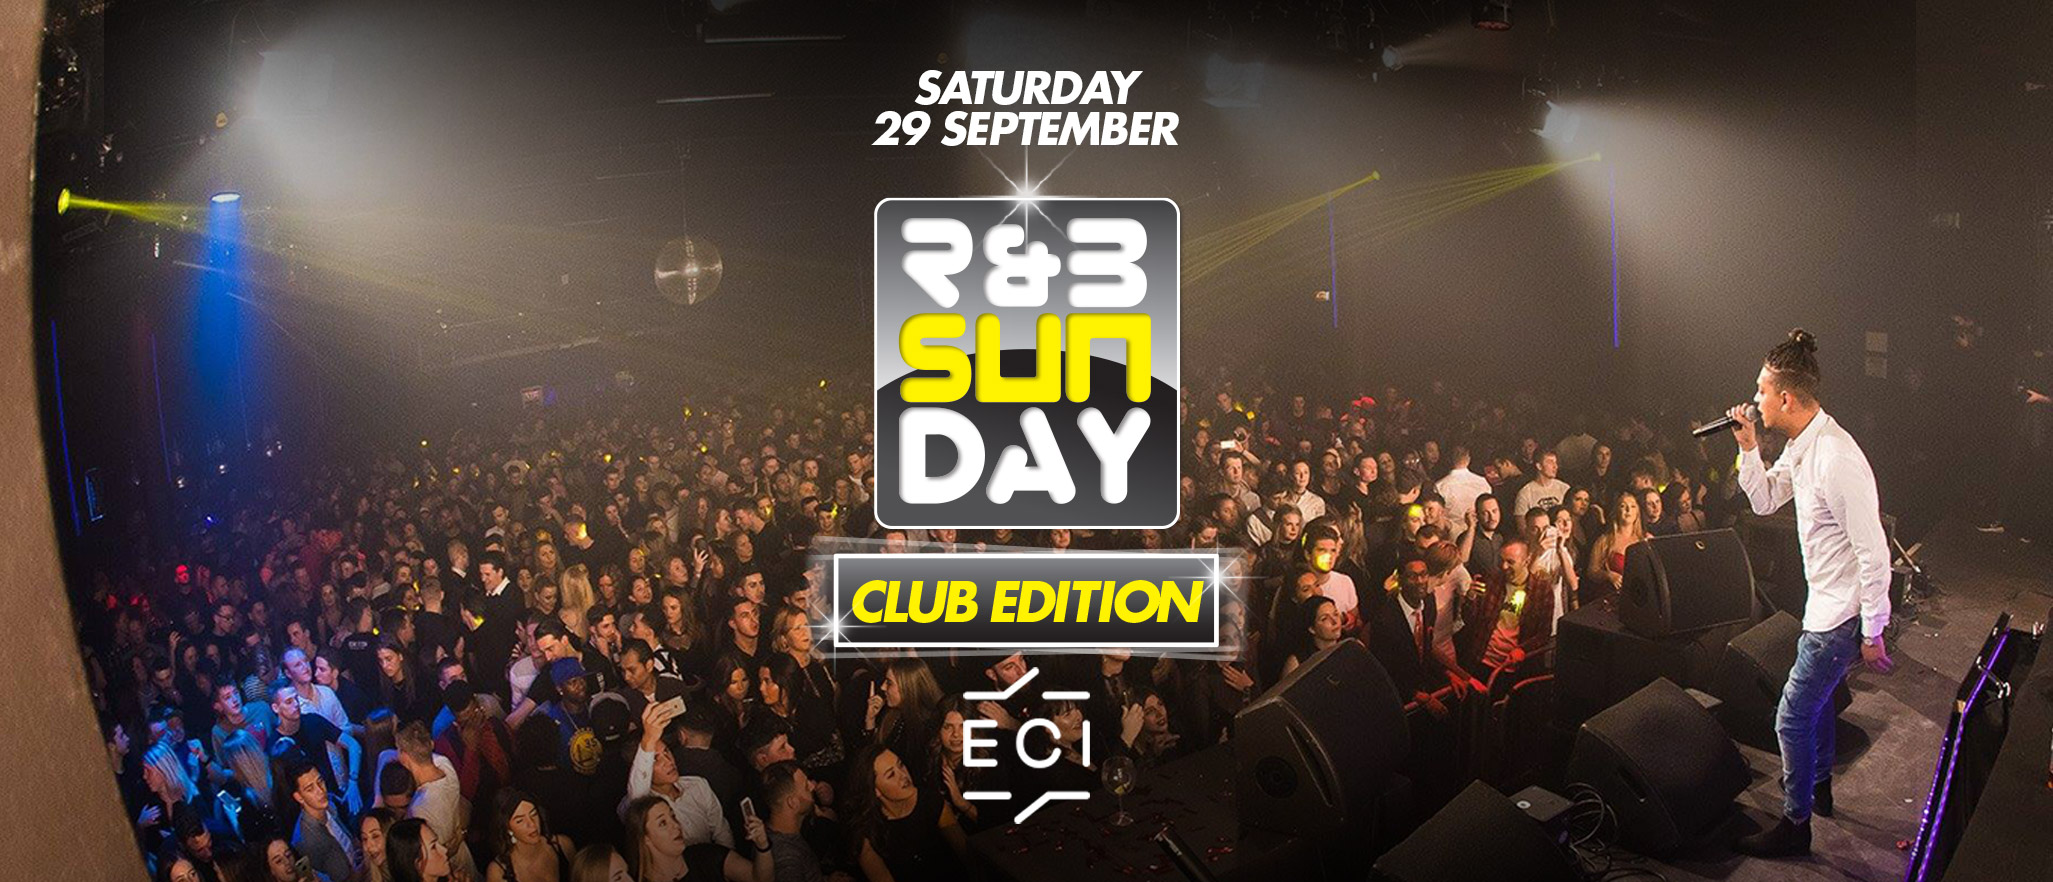 R&B Sunday – Club Edition | ECI Roermond